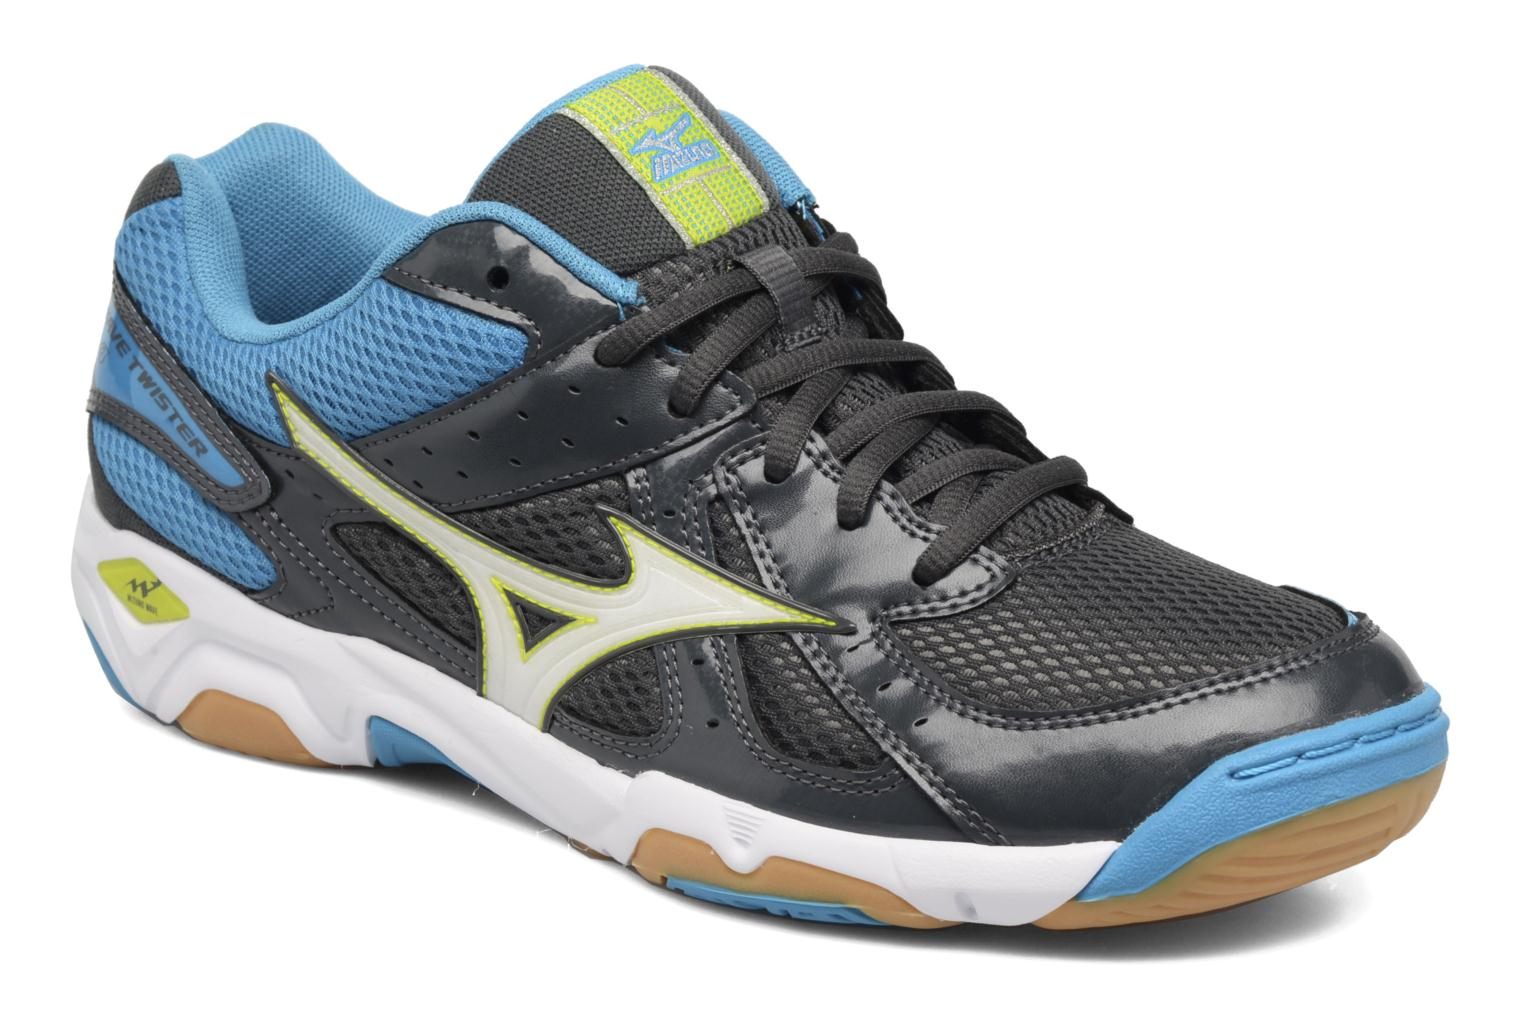 Sportschoenen Wave Twister 4 by Mizuno